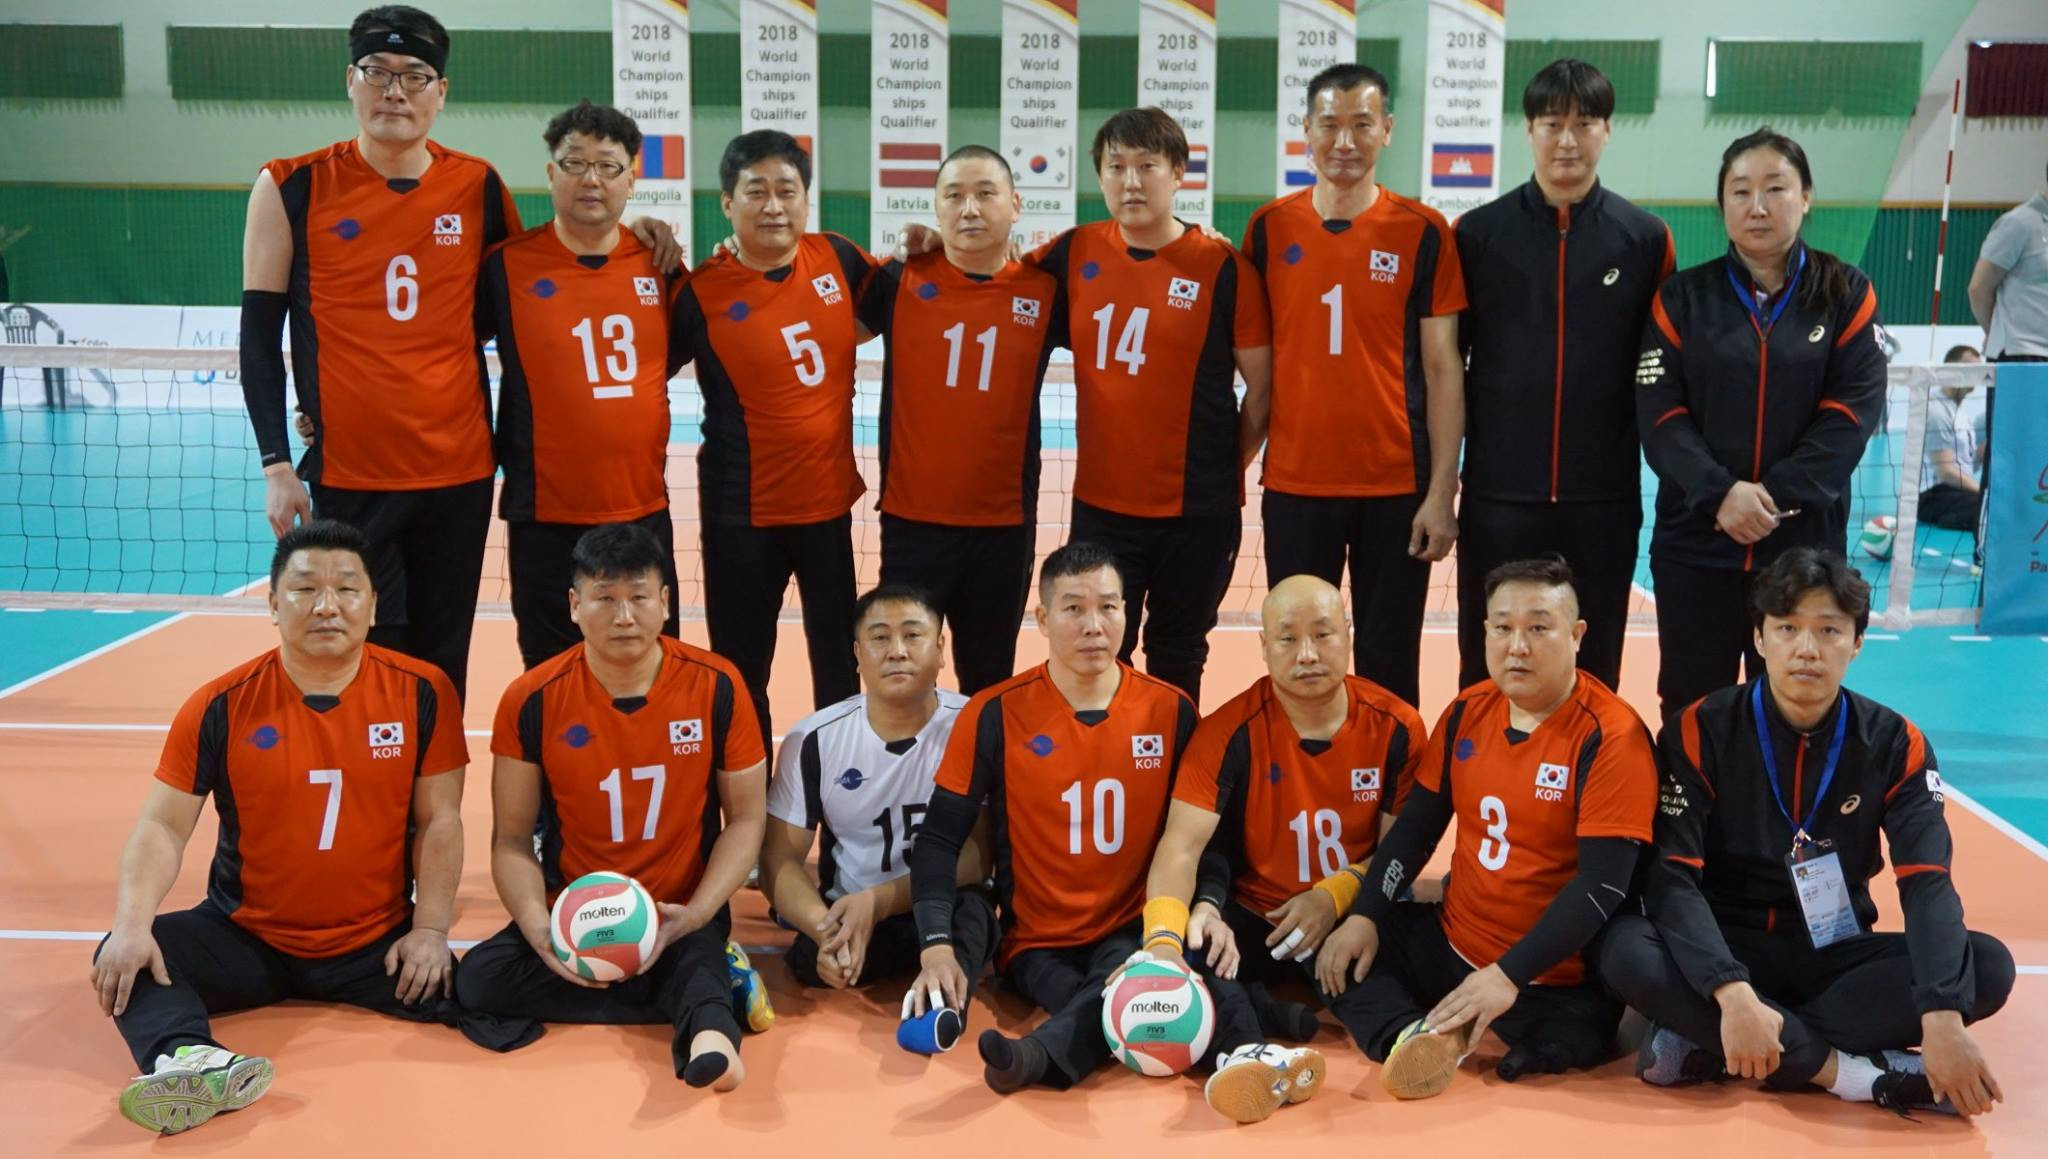 Hosts South Korea make strong start to final qualifier for 2018 Sitting Volleyball World Championships